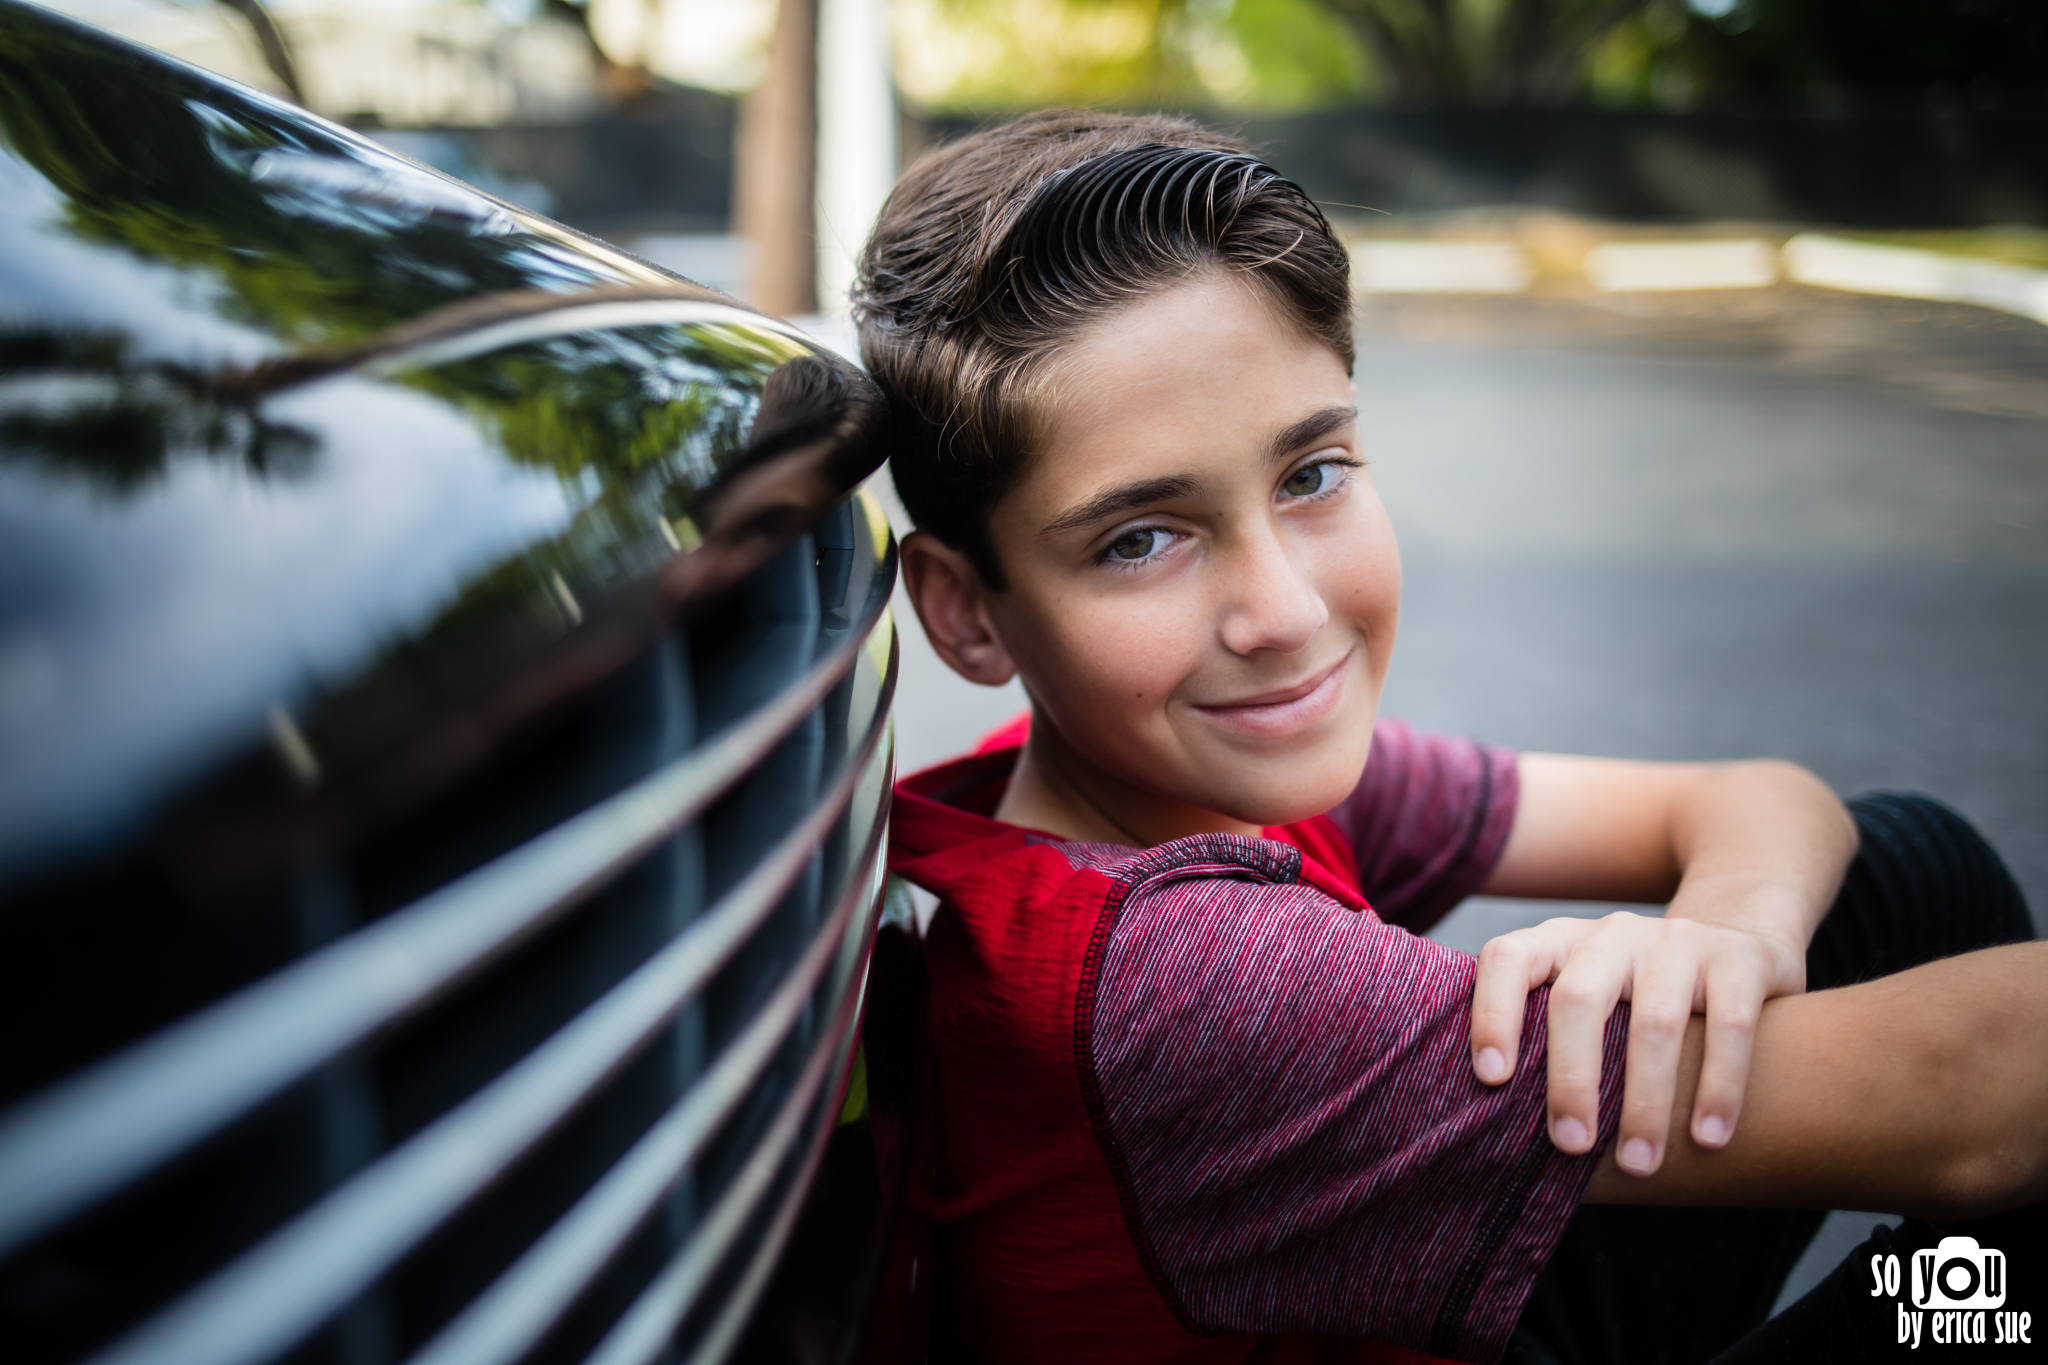 so-you-by-erica-sue-mitzvah-photographer-collection-luxury-car-ft-lauderdale-4959.jpg